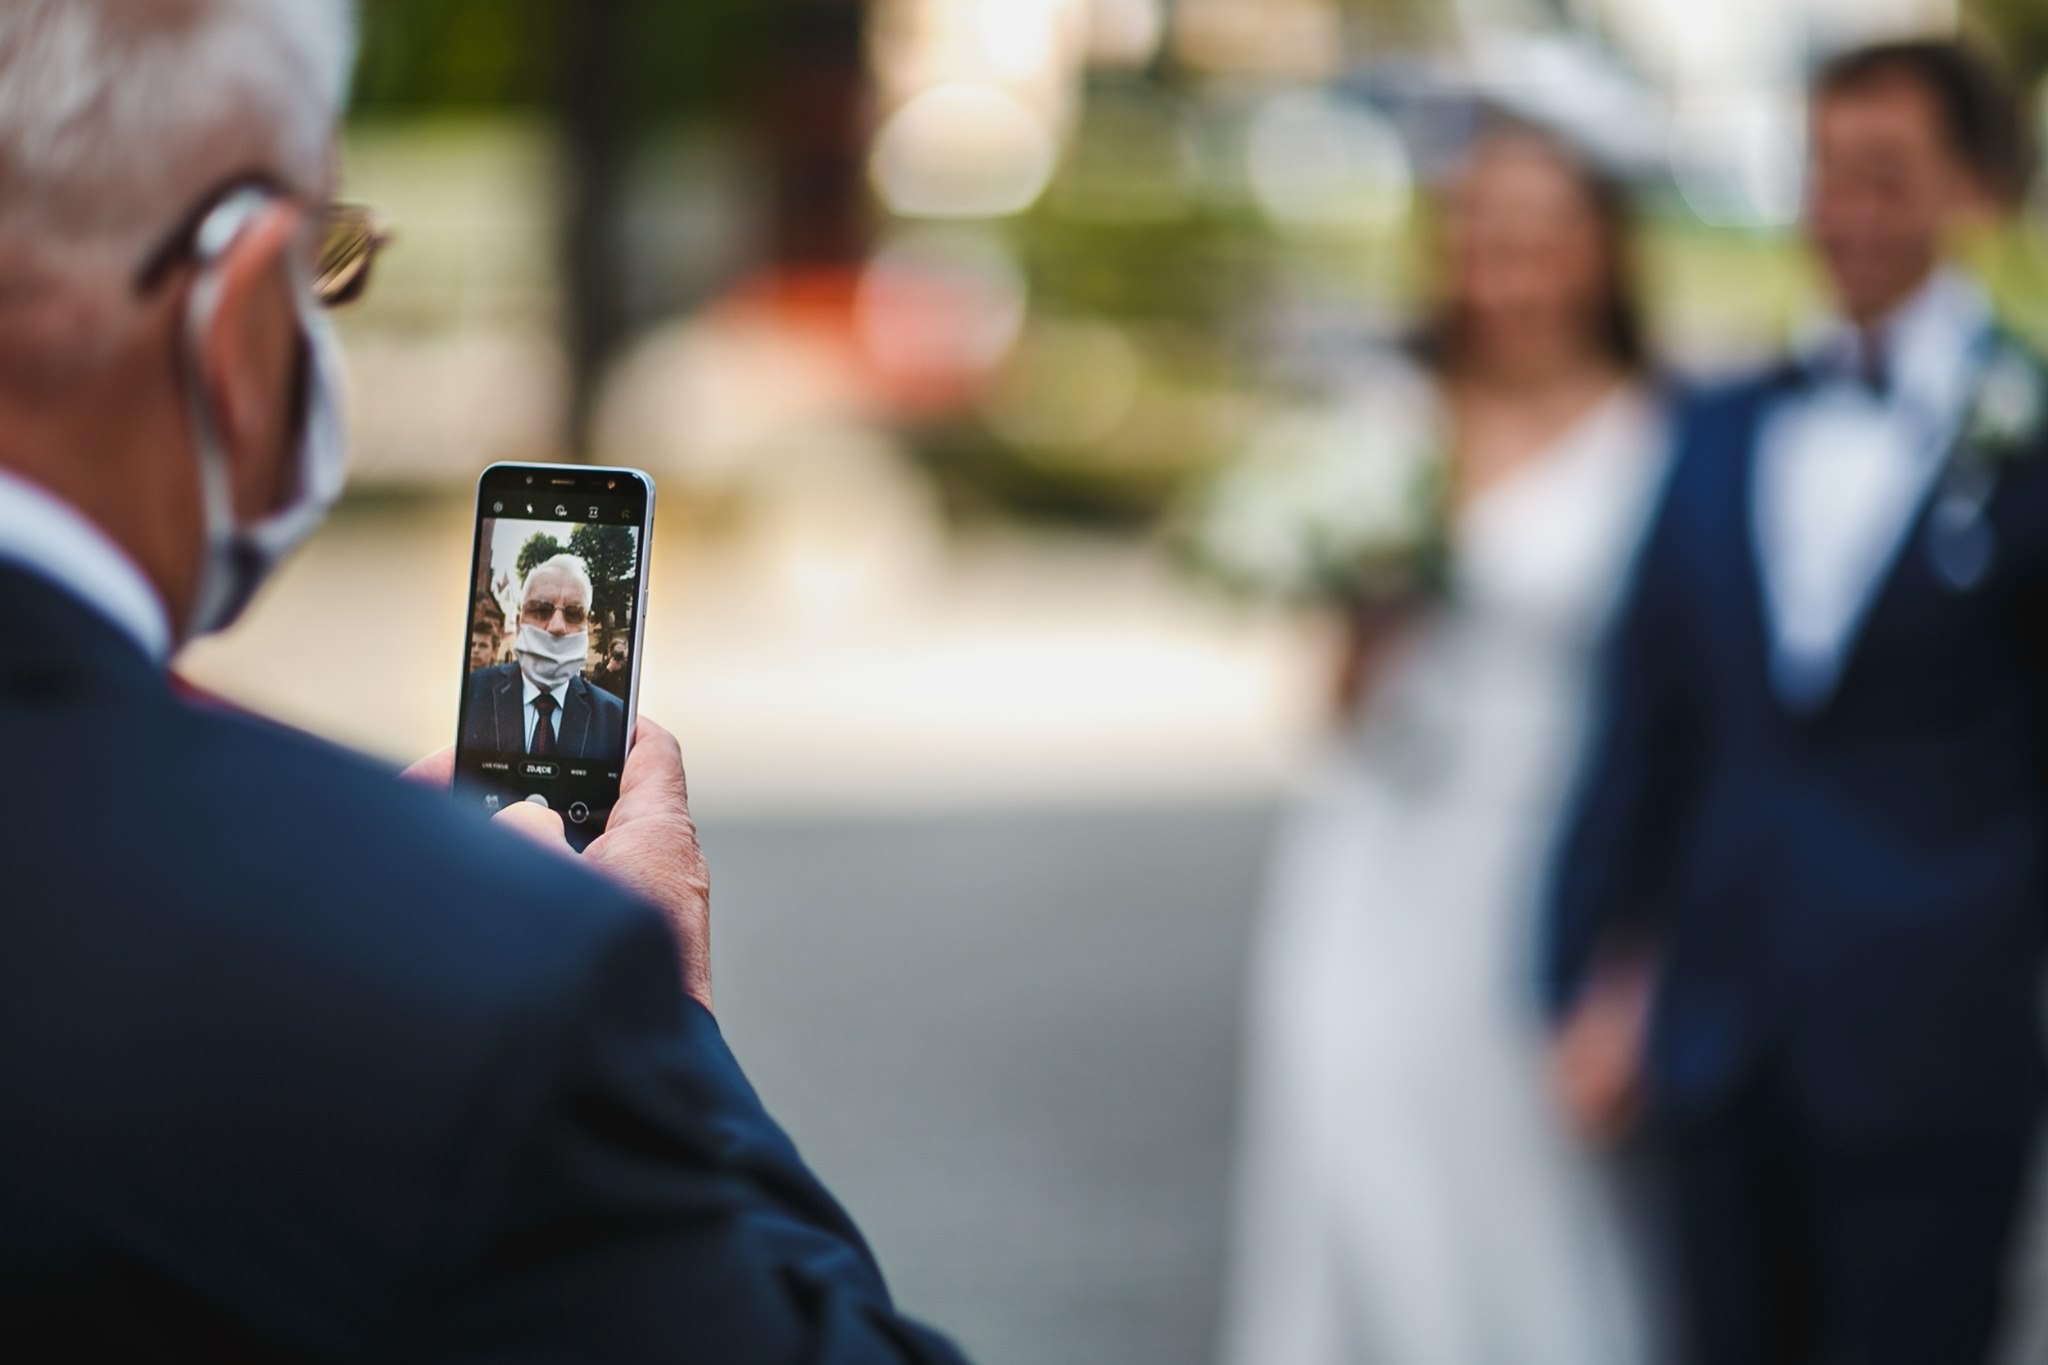 a grandfather wants to take a photo of the wedding couple with his phone but is accidentally taking a selfie